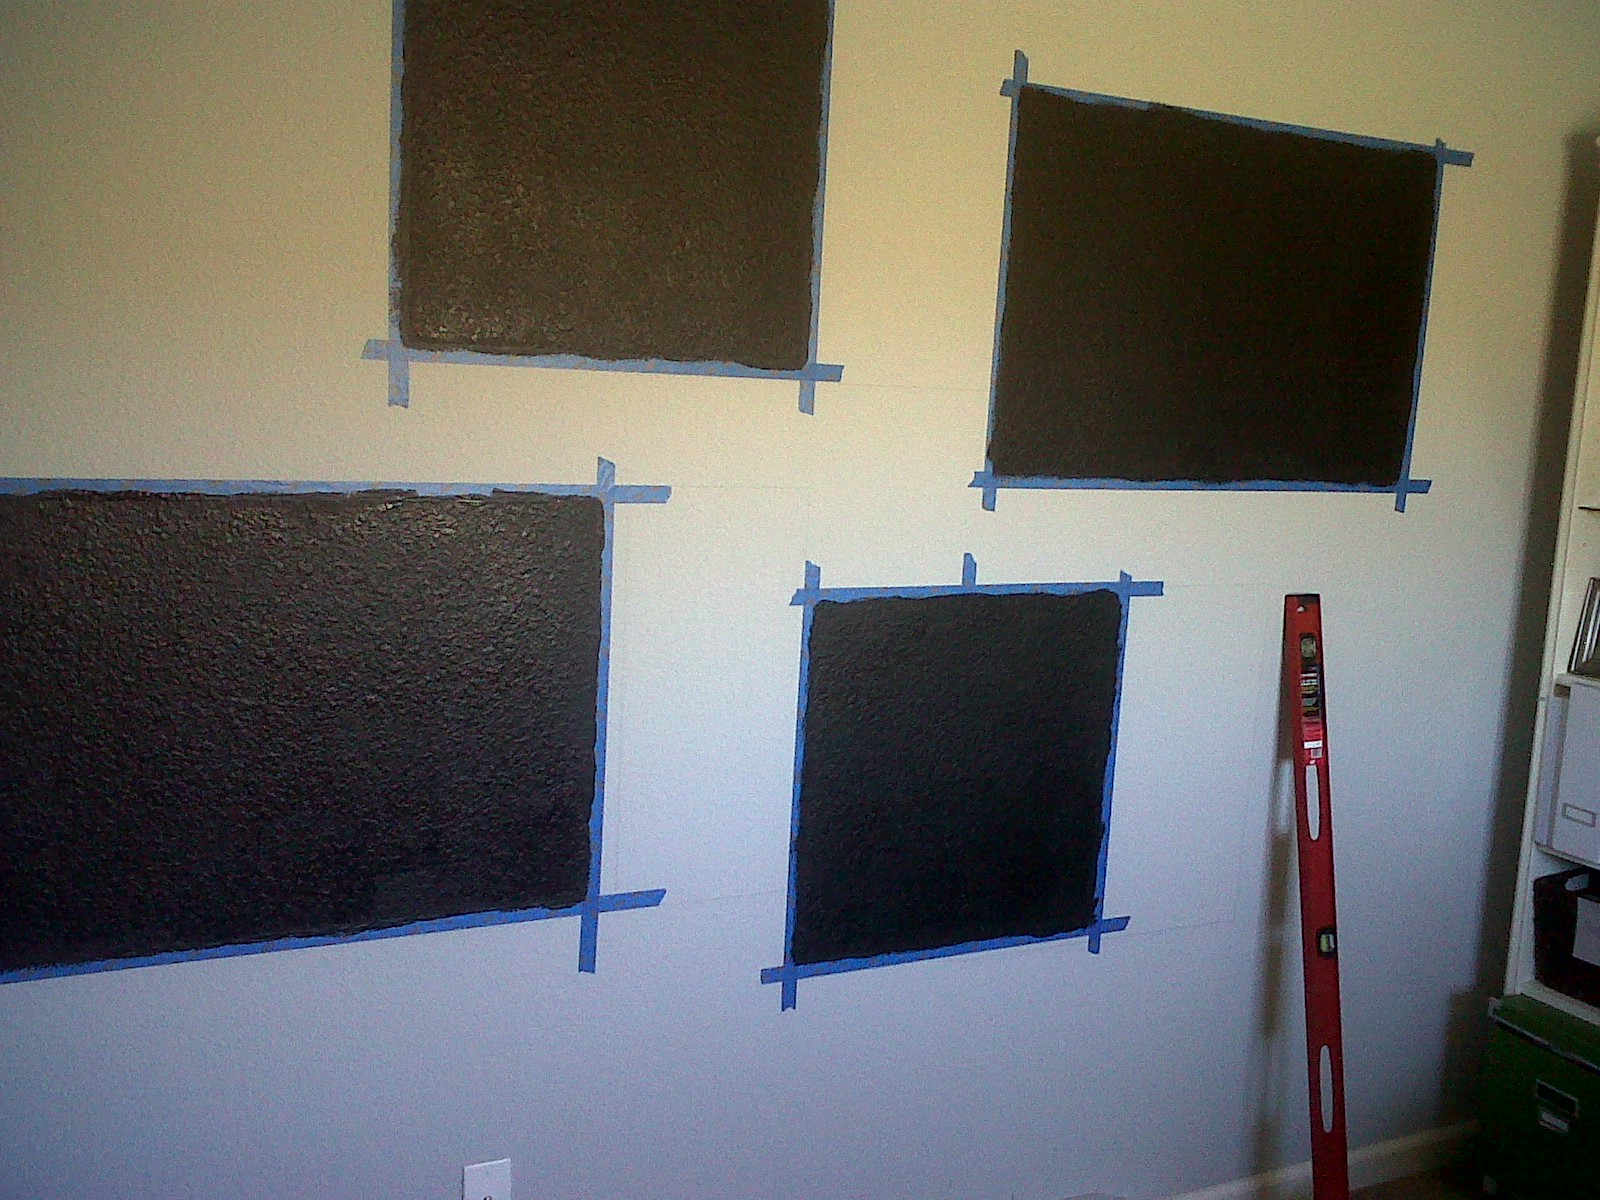 So I Measured Out Two 2 X Squares And 3 Rectangles Painted Them With Chalkboard Paint